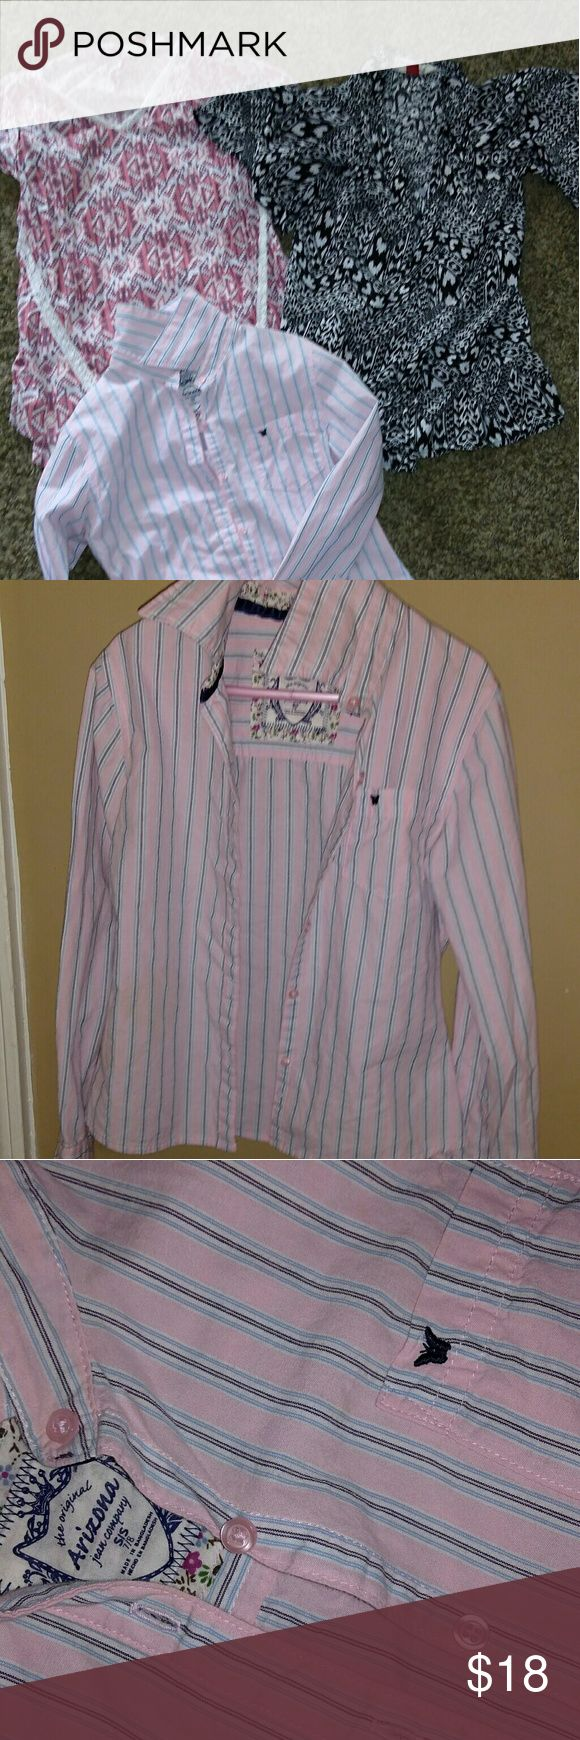 Set of 3 Arizona - Red Camel tops. *Striped Button up- Pink & Navy- Arizona Sz Small (7-8) *Black & White short sleeve kimono like top. Open front does not zip or button. -Red Camel Sz Small (7-8) *Pink V neck with cream colored lace and purple Aztec print. Has a built in tank underneath. - Red Camel  Sz Medium. (My daughter wore this the same time as the other 2 items, it fits more like a small) Red Camel Shirts & Tops